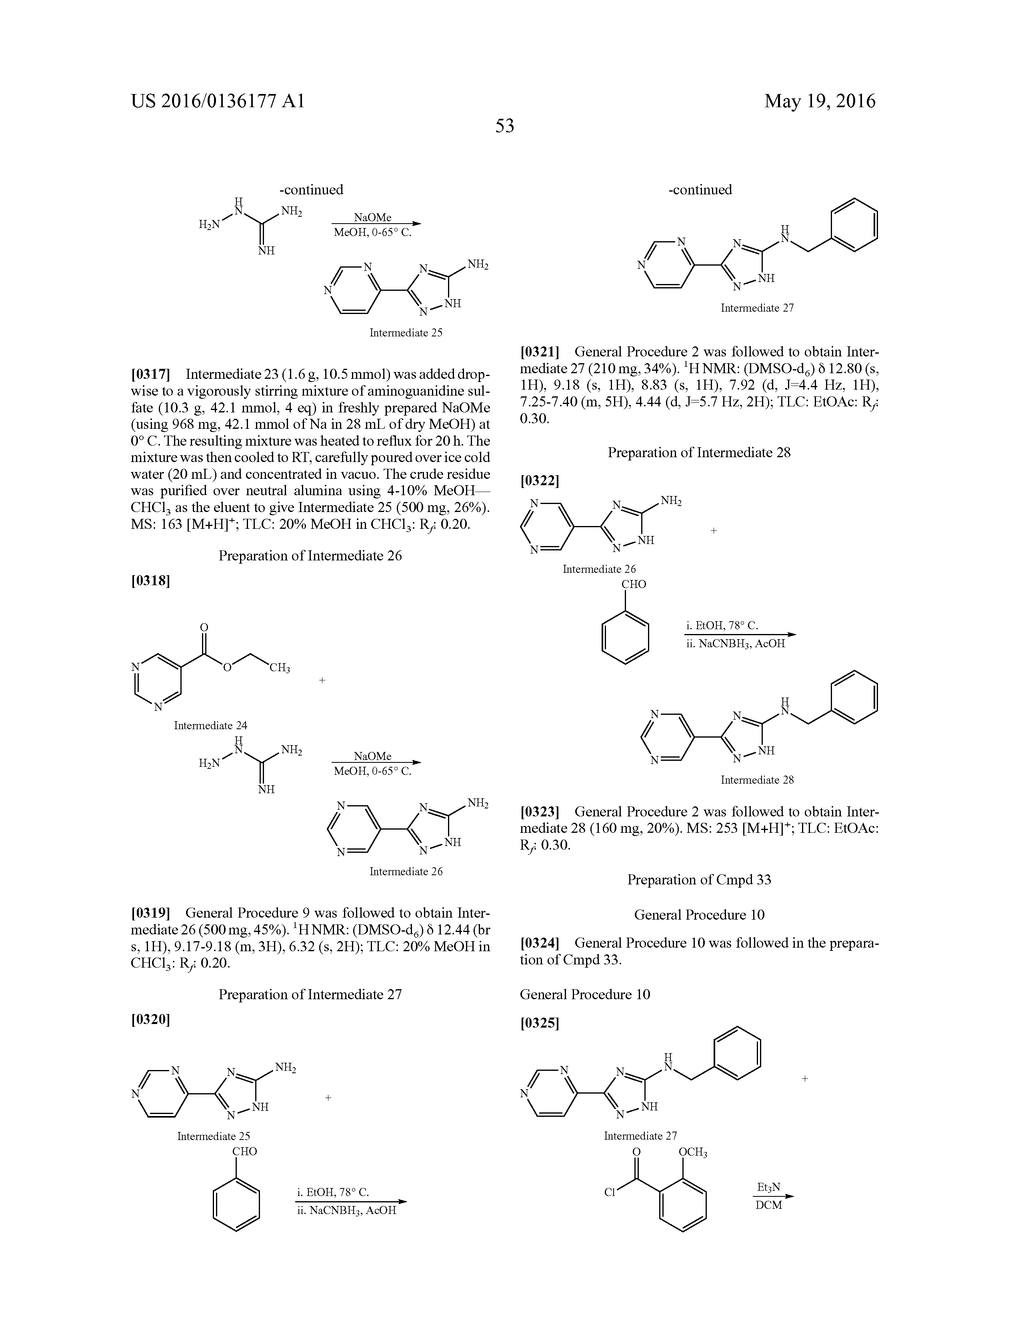 MULTISUBSTITUTED AROMATIC COMPOUNDS AS INHIBITORS OF THROMBIN - diagram, schematic, and image 54